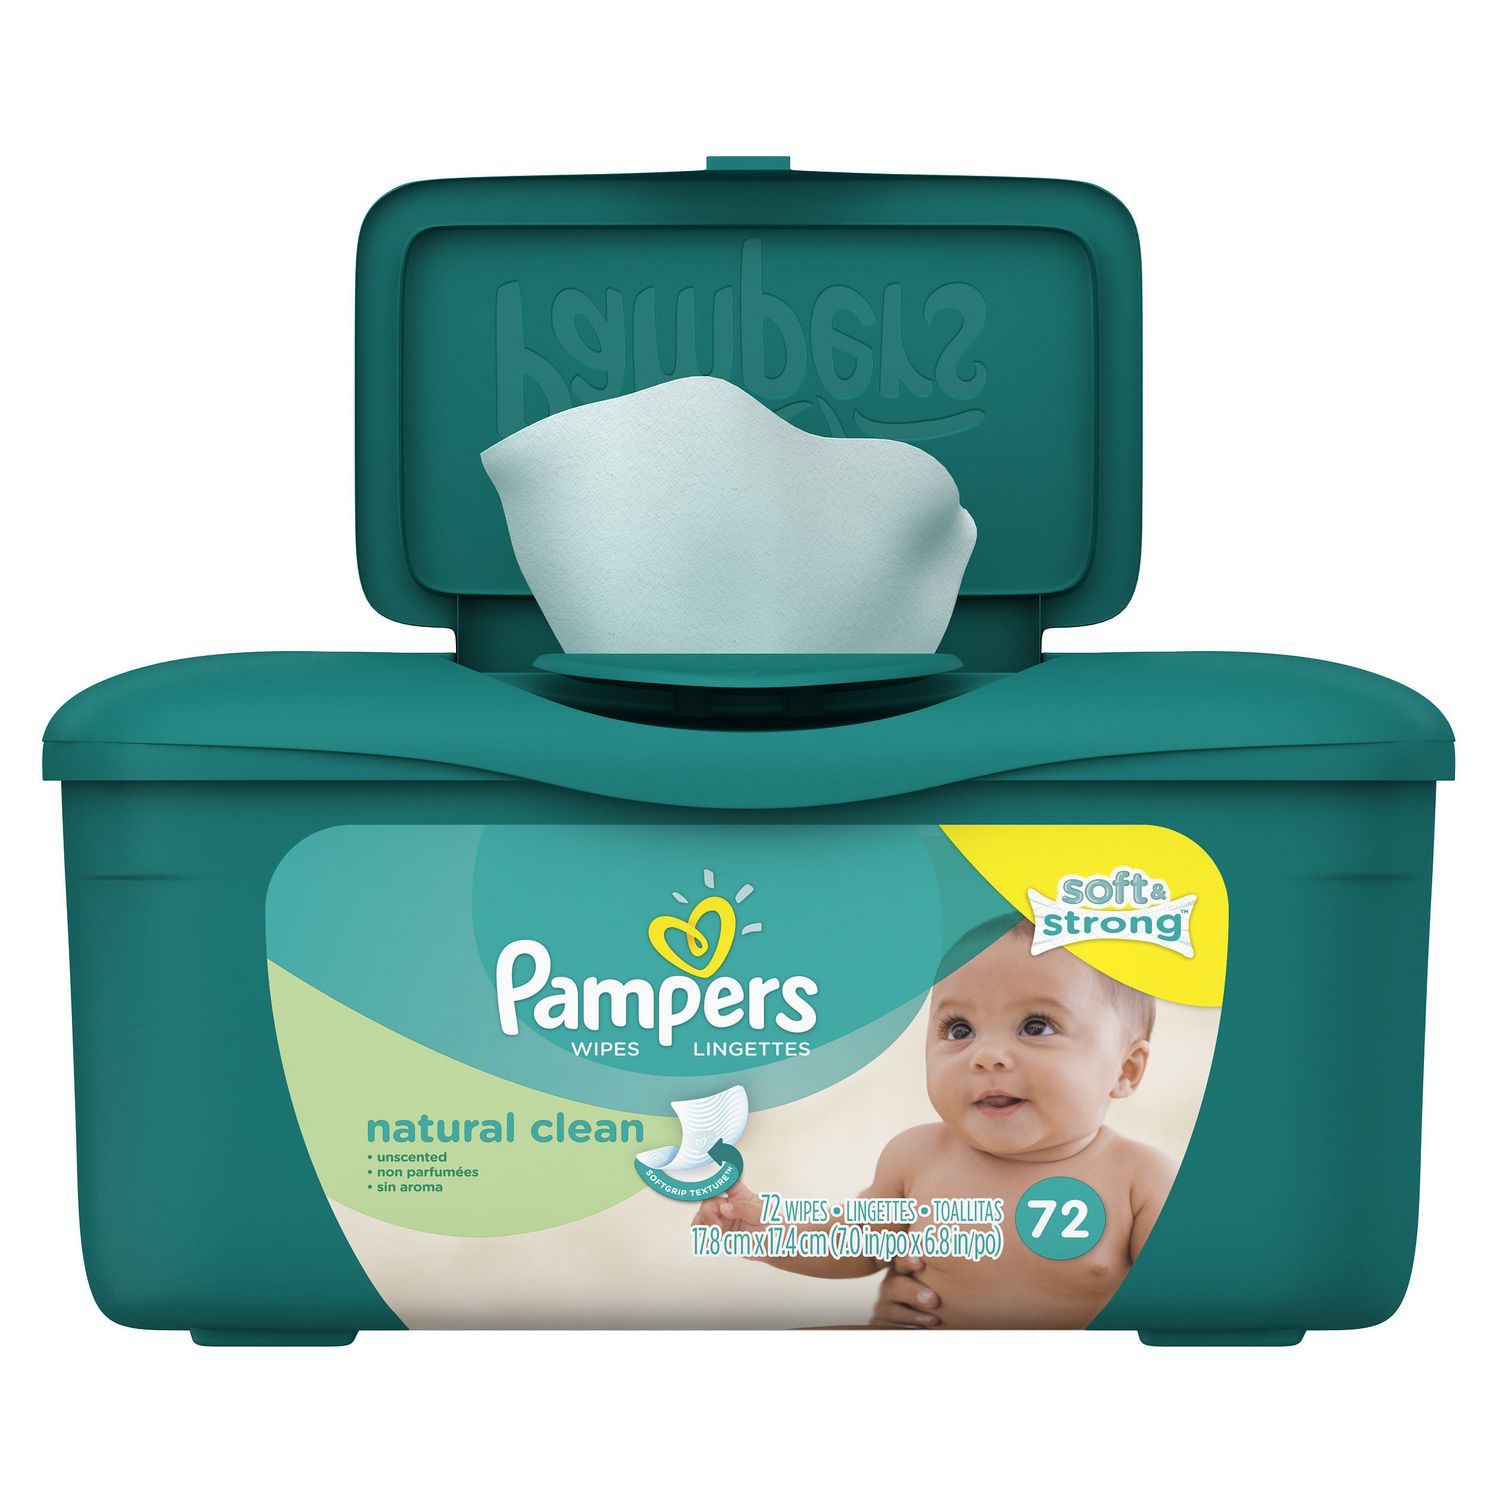 1500x1500 Pampers Baby Wipes